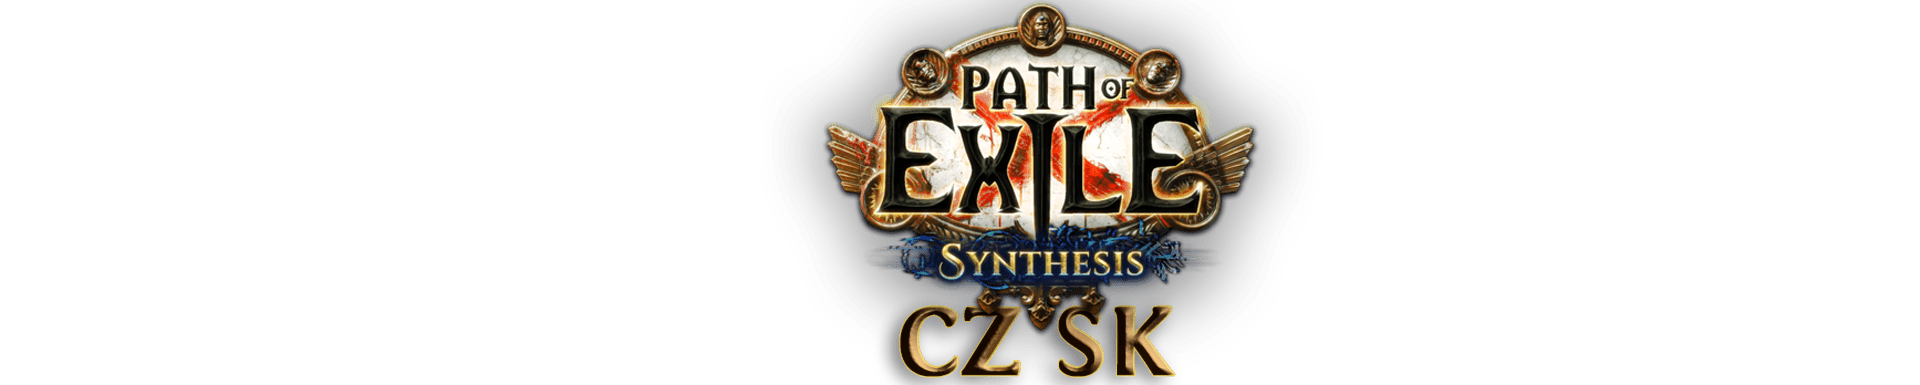 Path of Exile CZSK